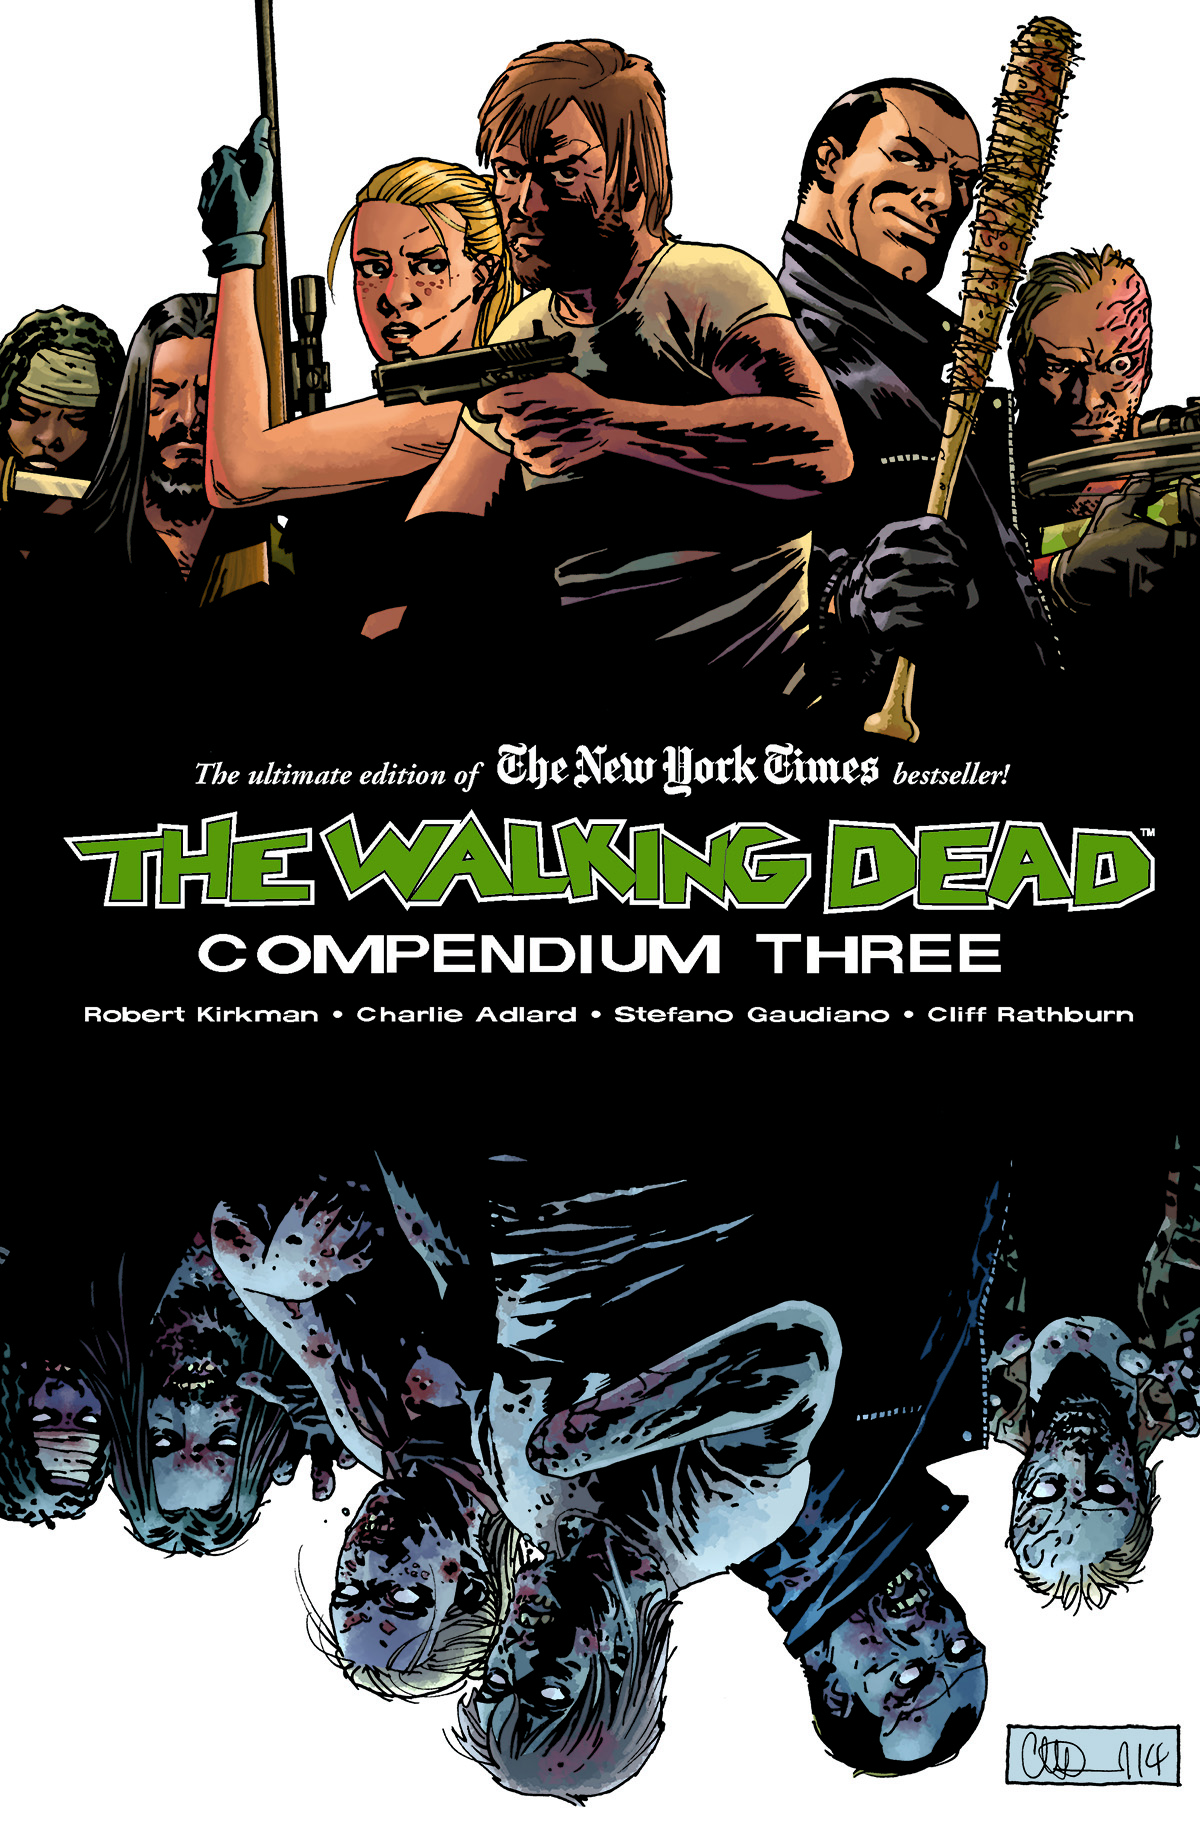 THE WALKING DEAD: COMPENDIUM VOLUME THREE WILL BE OUT JUST IN TIME WHEN TV SERIES RETURNS